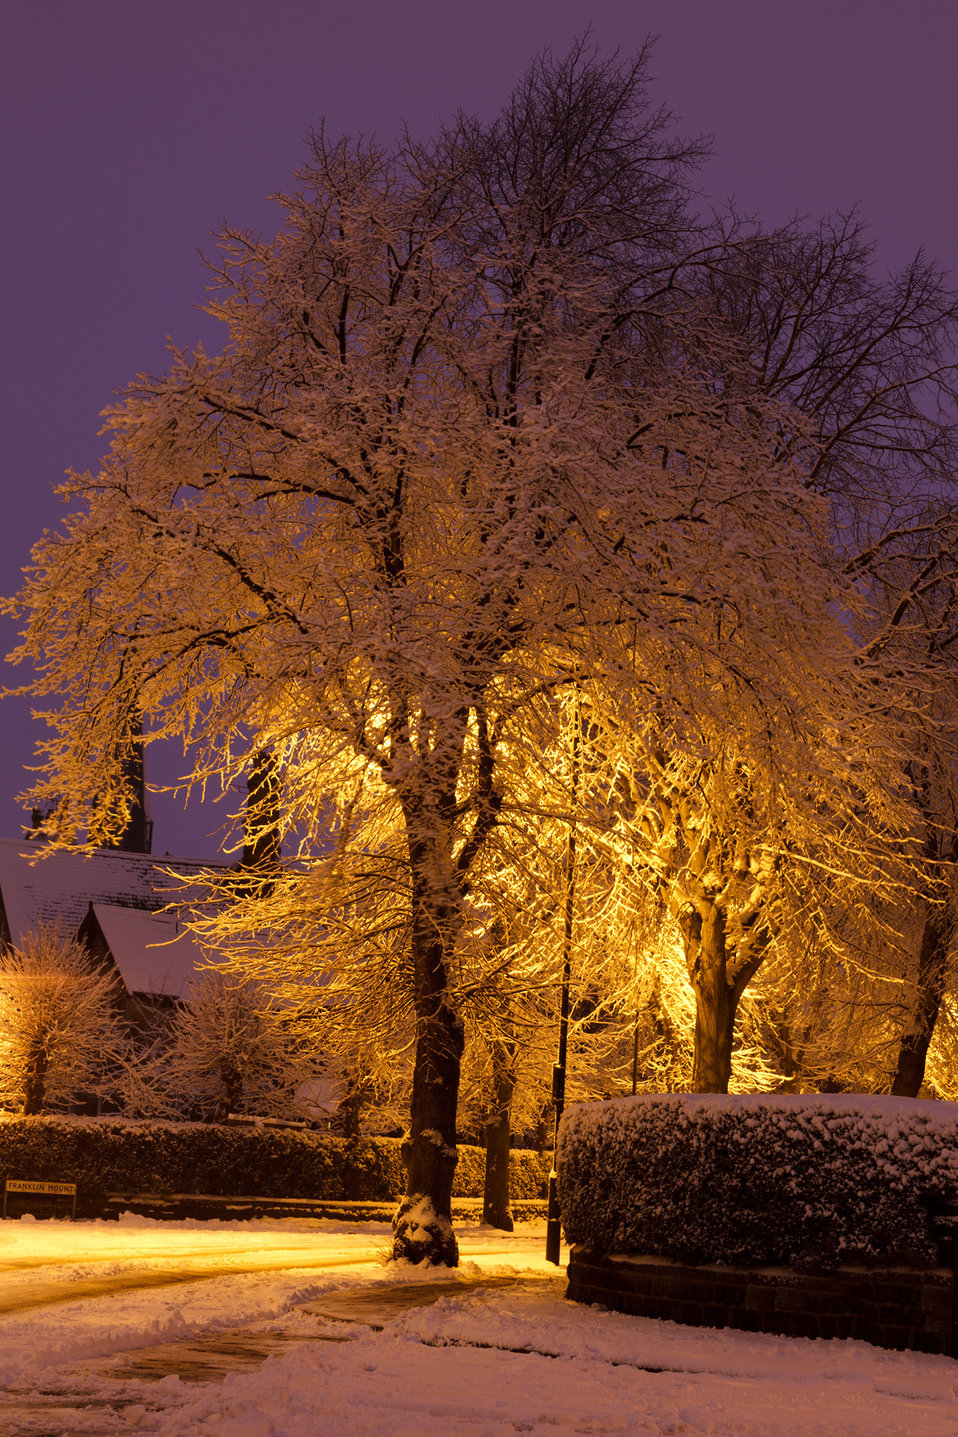 Snow covered tree at night